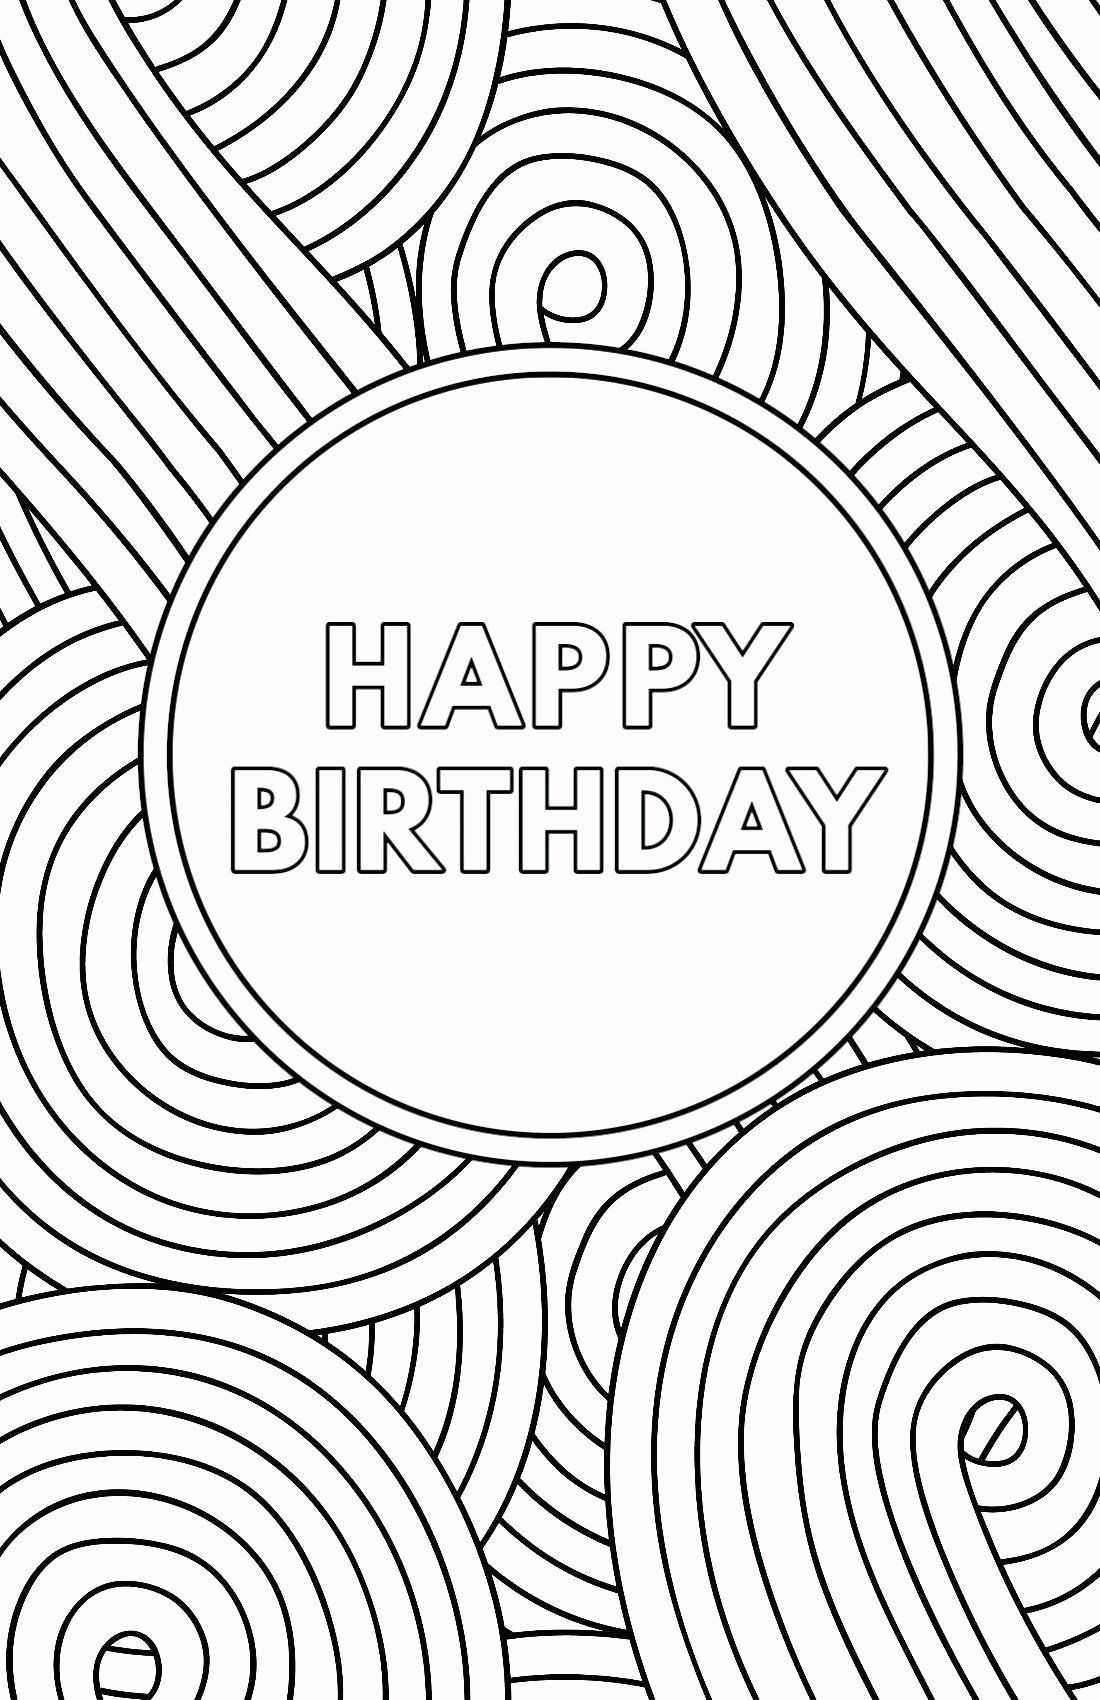 Coloring Birthday Card Printable Best Of Happy Birthday Card Coloring Template Geburtstagskarten Zum Ausdrucken Geburtstagskarte Grusskarten